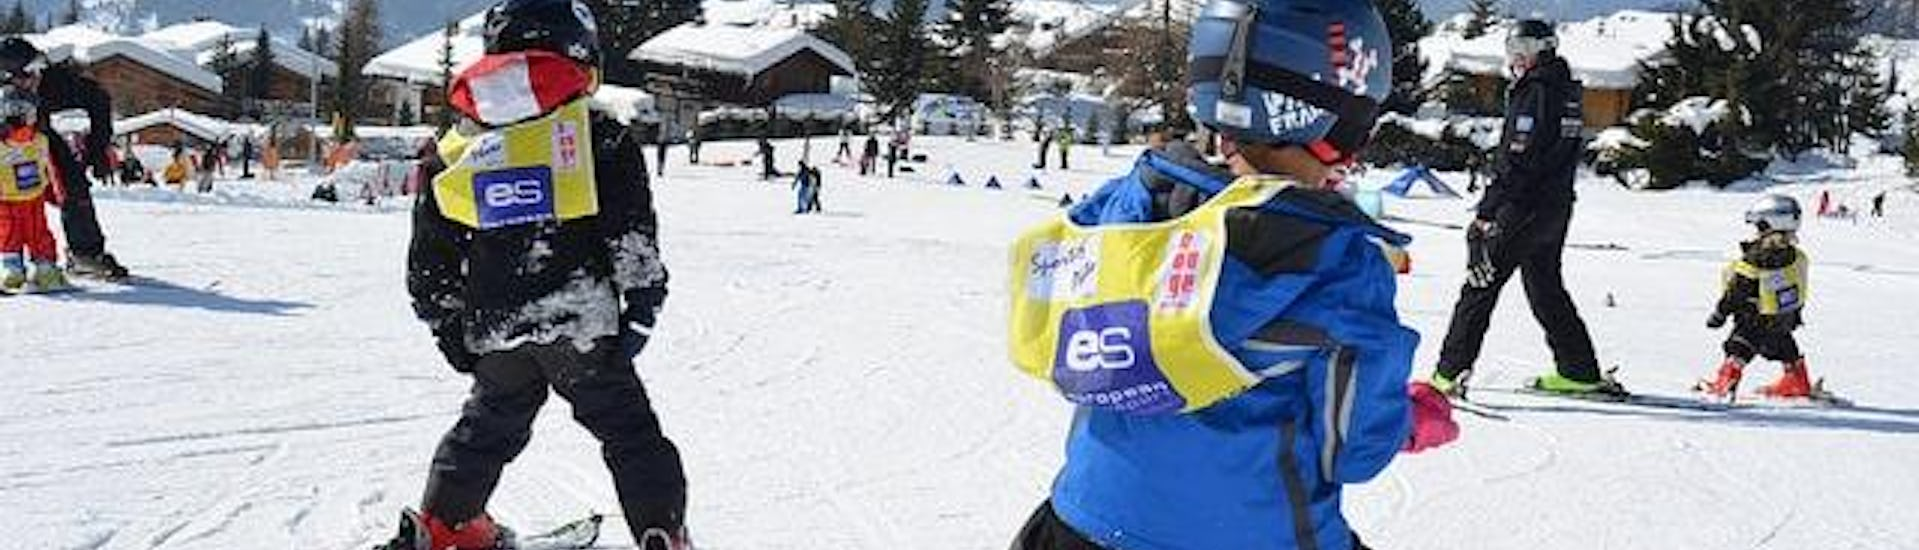 Ski Lessons (6-12 years) - Morning - Advanced